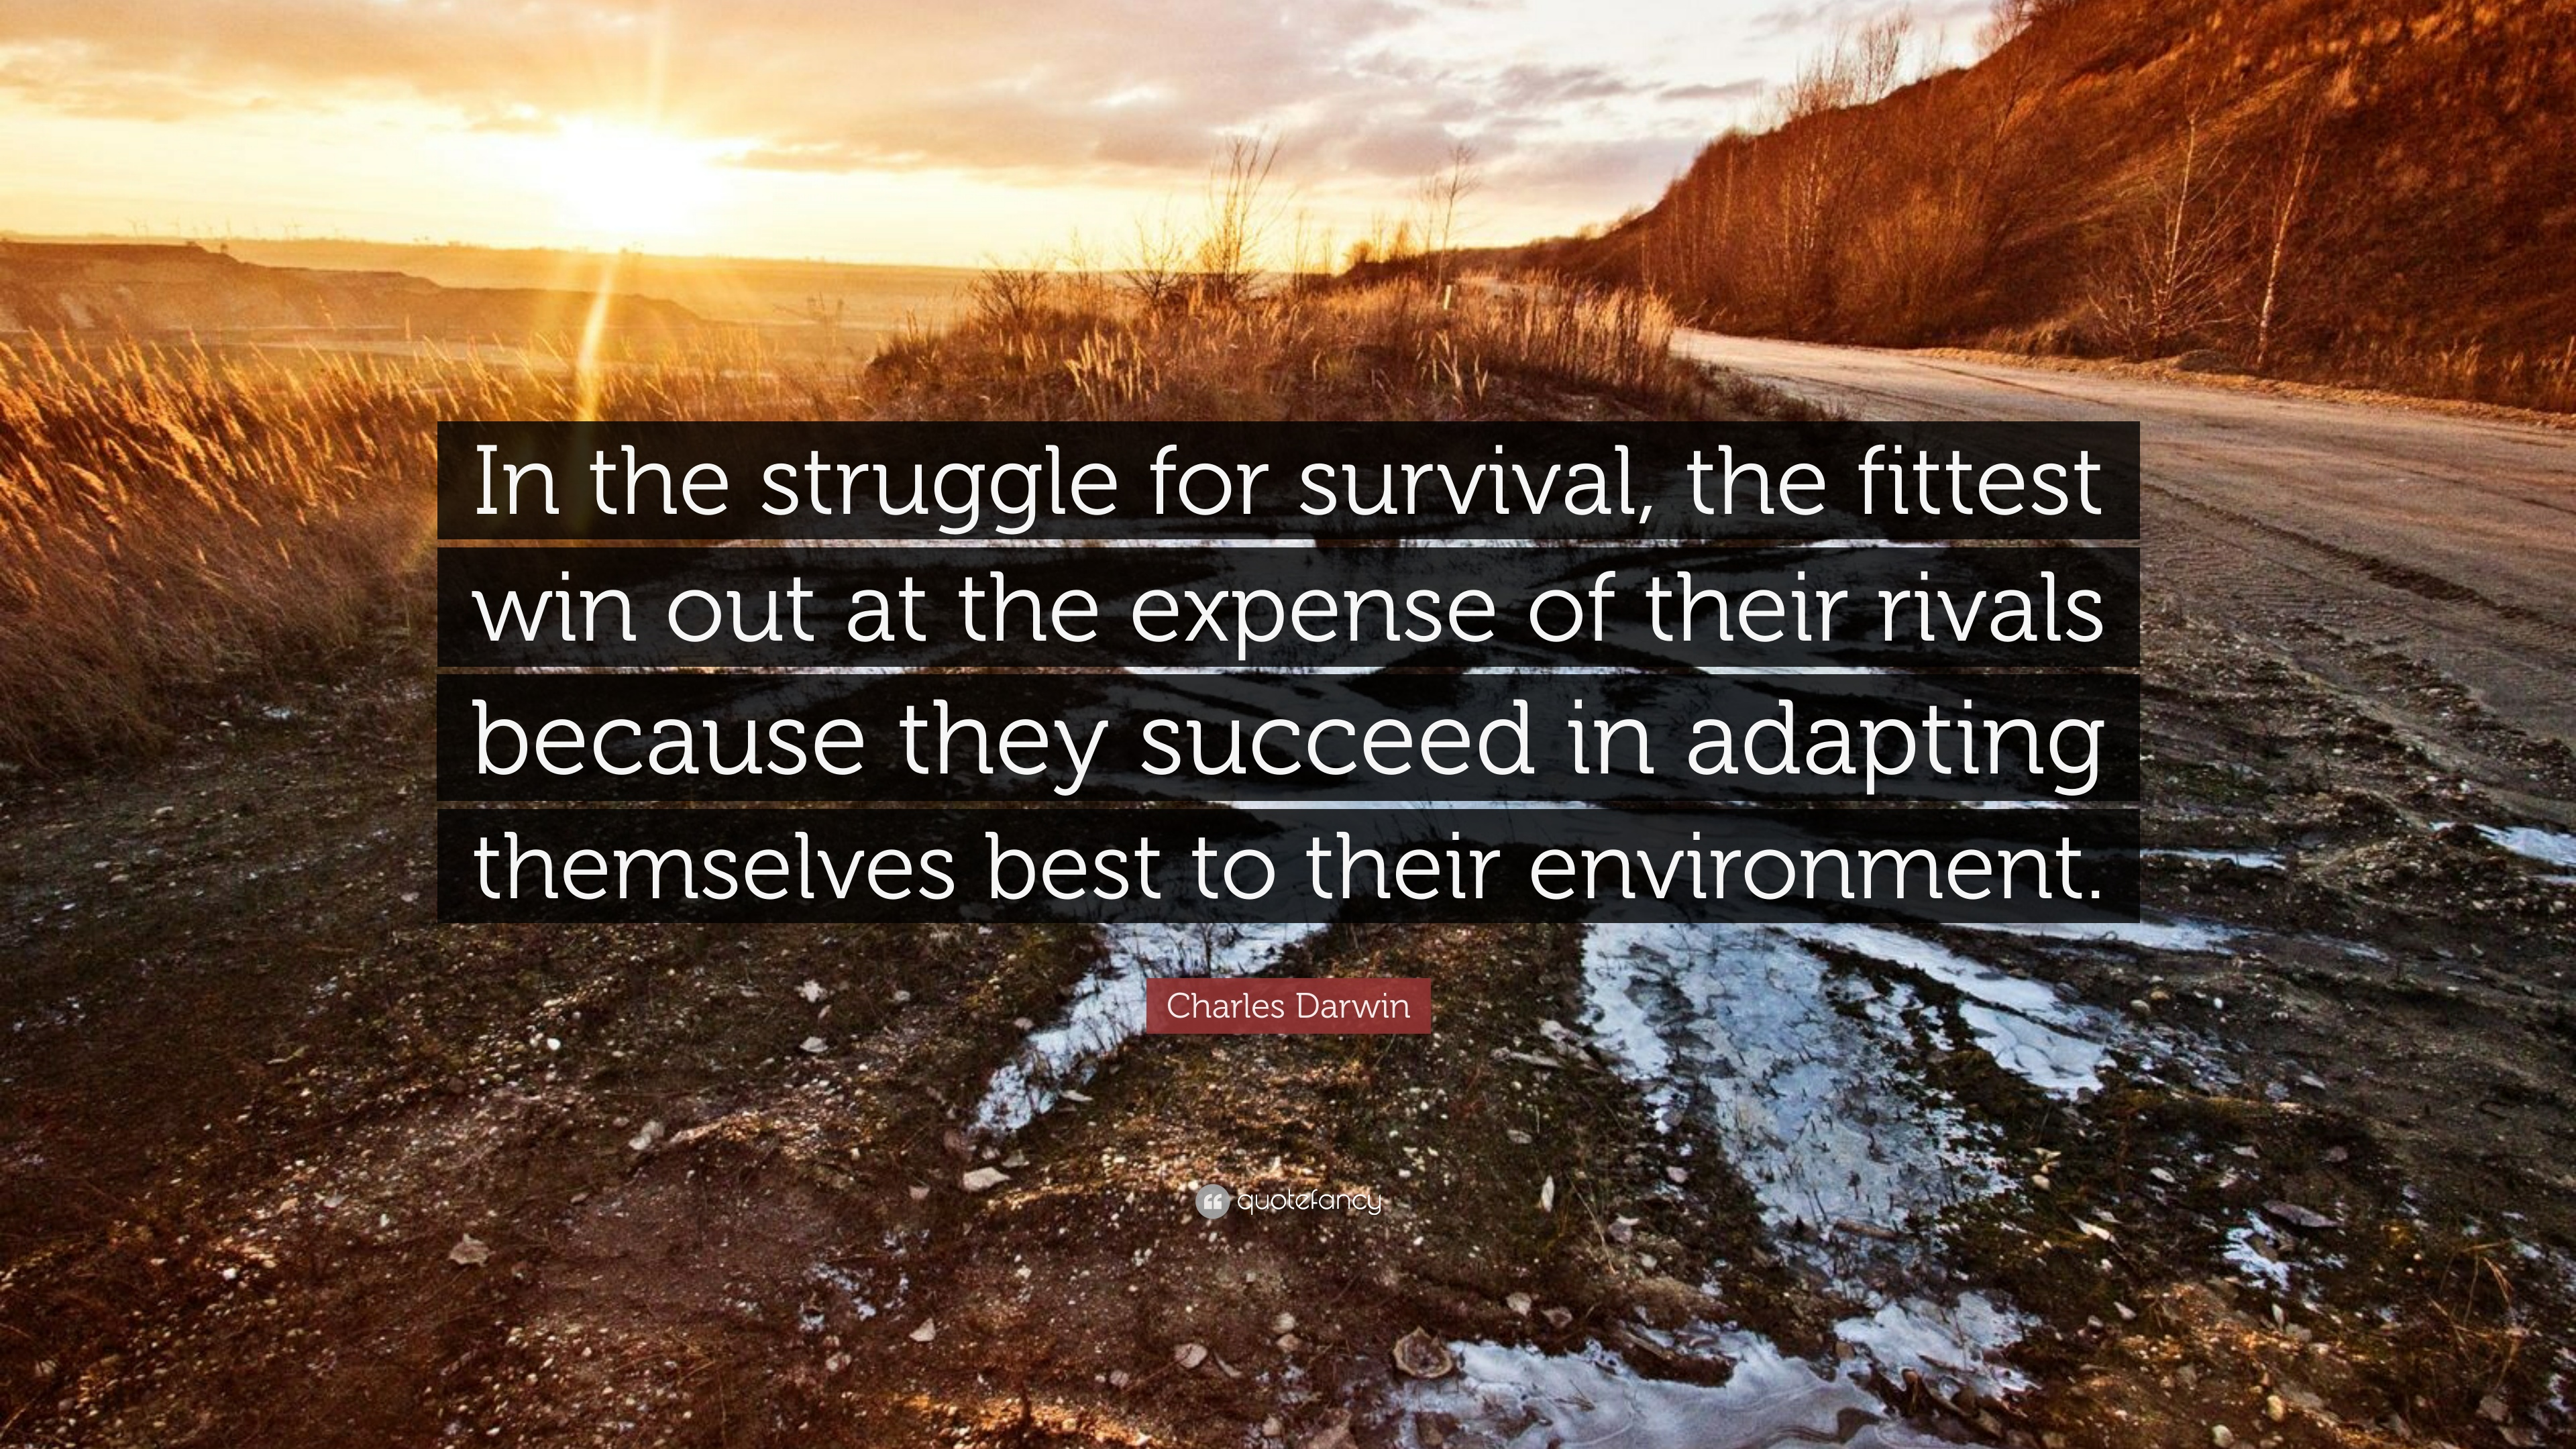 Survival Of Fittest >> Charles Darwin Quote In The Struggle For Survival The Fittest Win